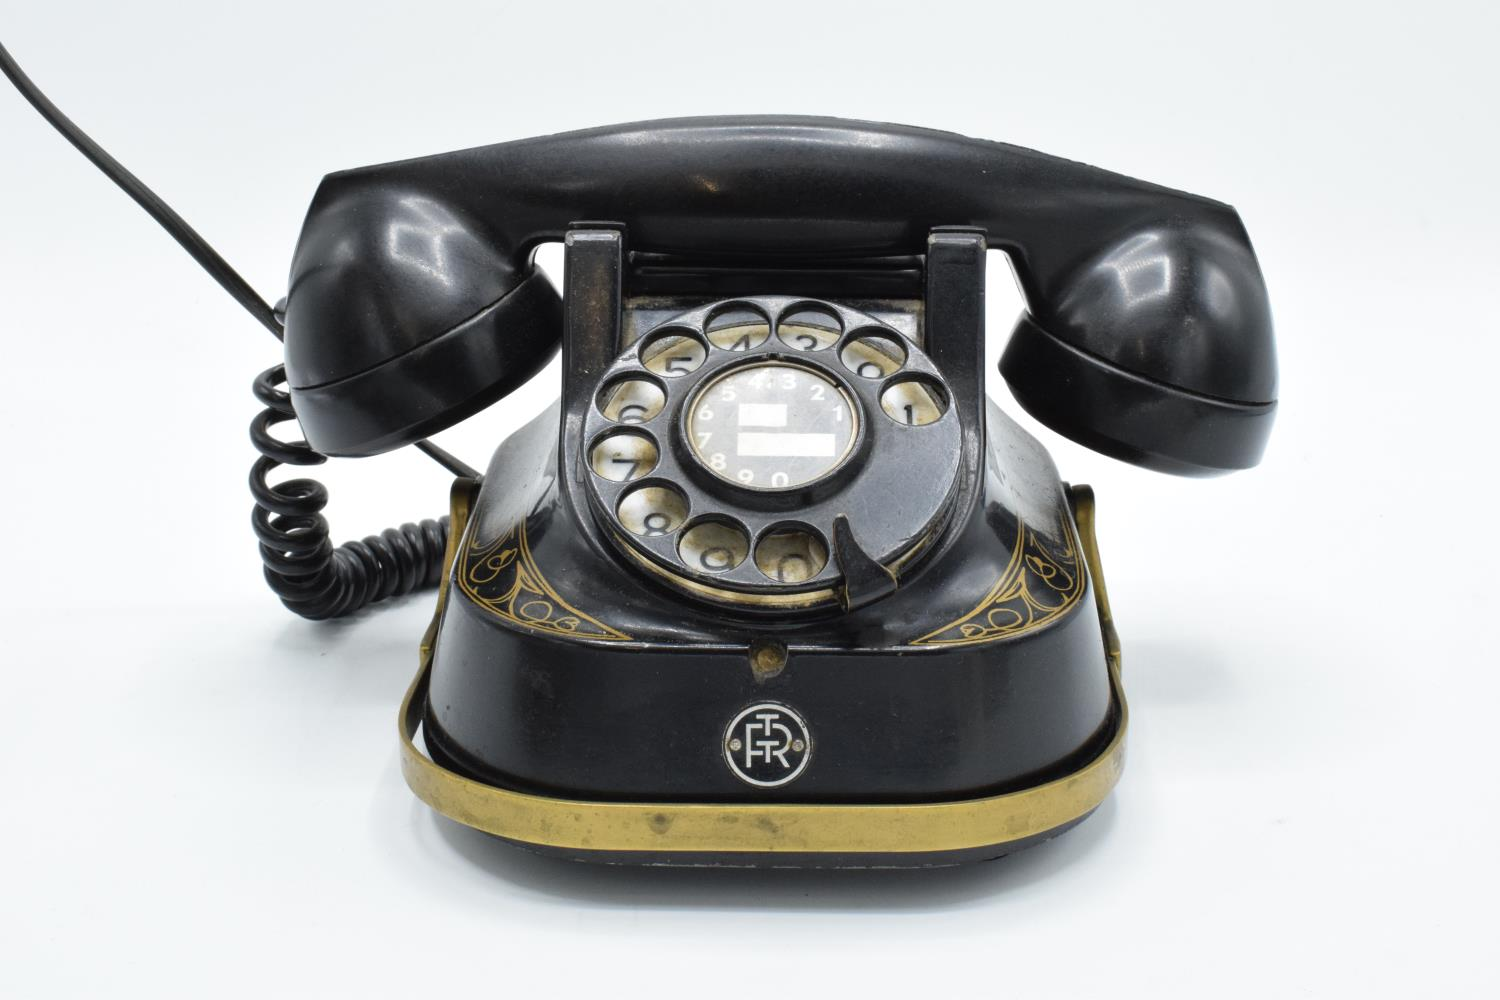 MFG Company Bell Telephone Belgique with Bakelite phone. Displays well. Untested. 16cm tall.